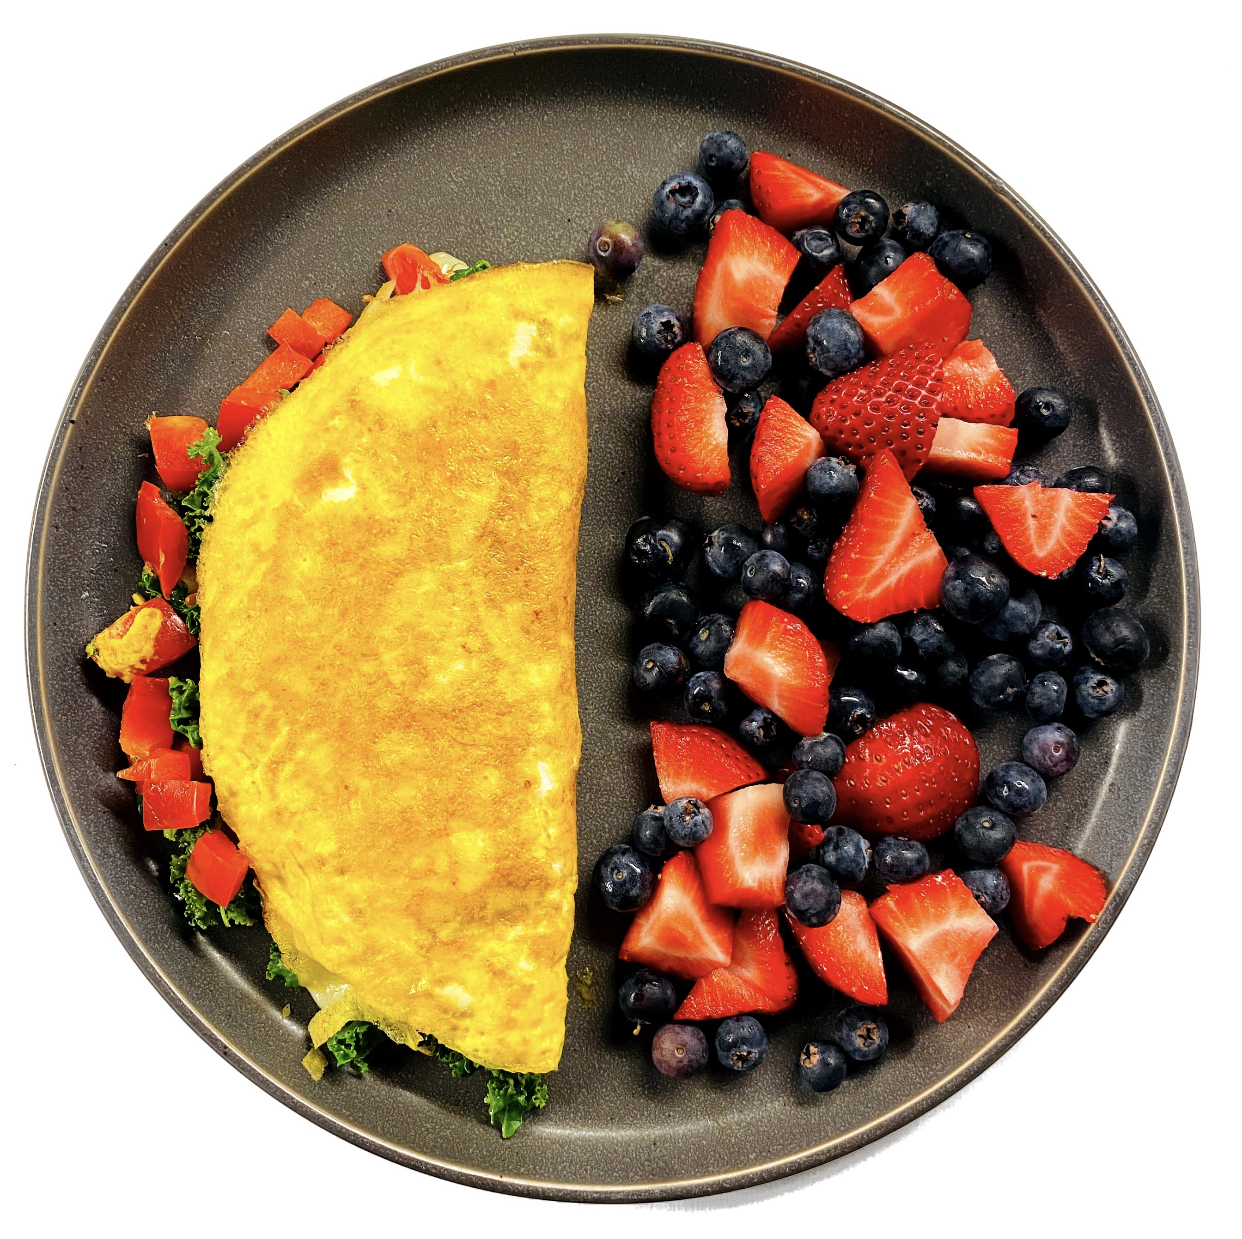 Healthy 5 Minute Omelette